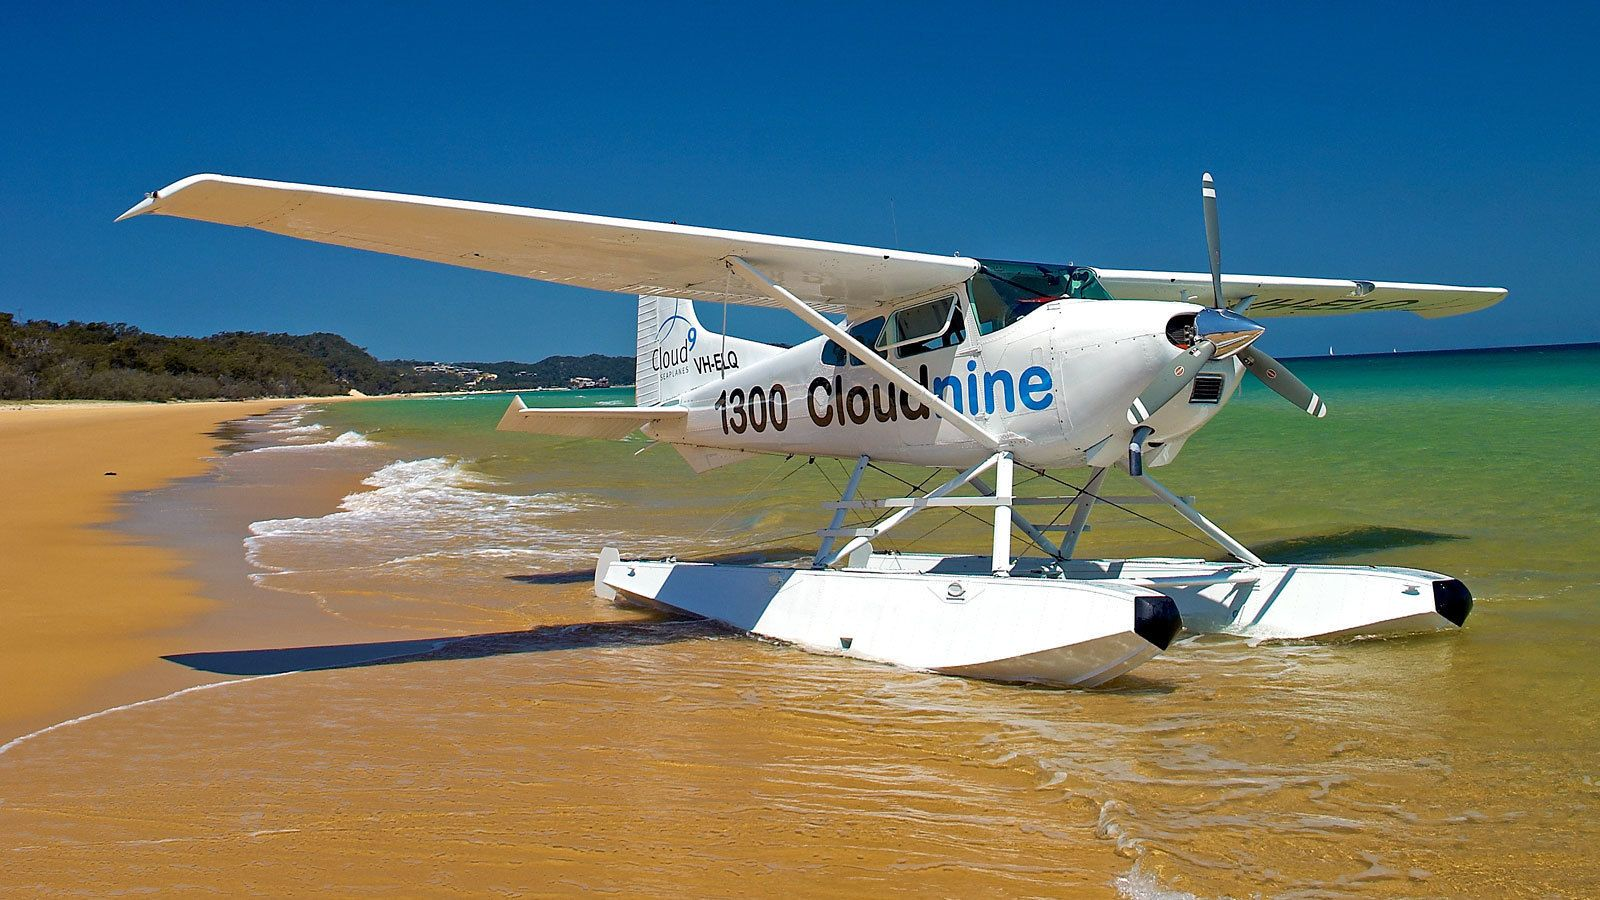 seaplane floating by the beach in Australia